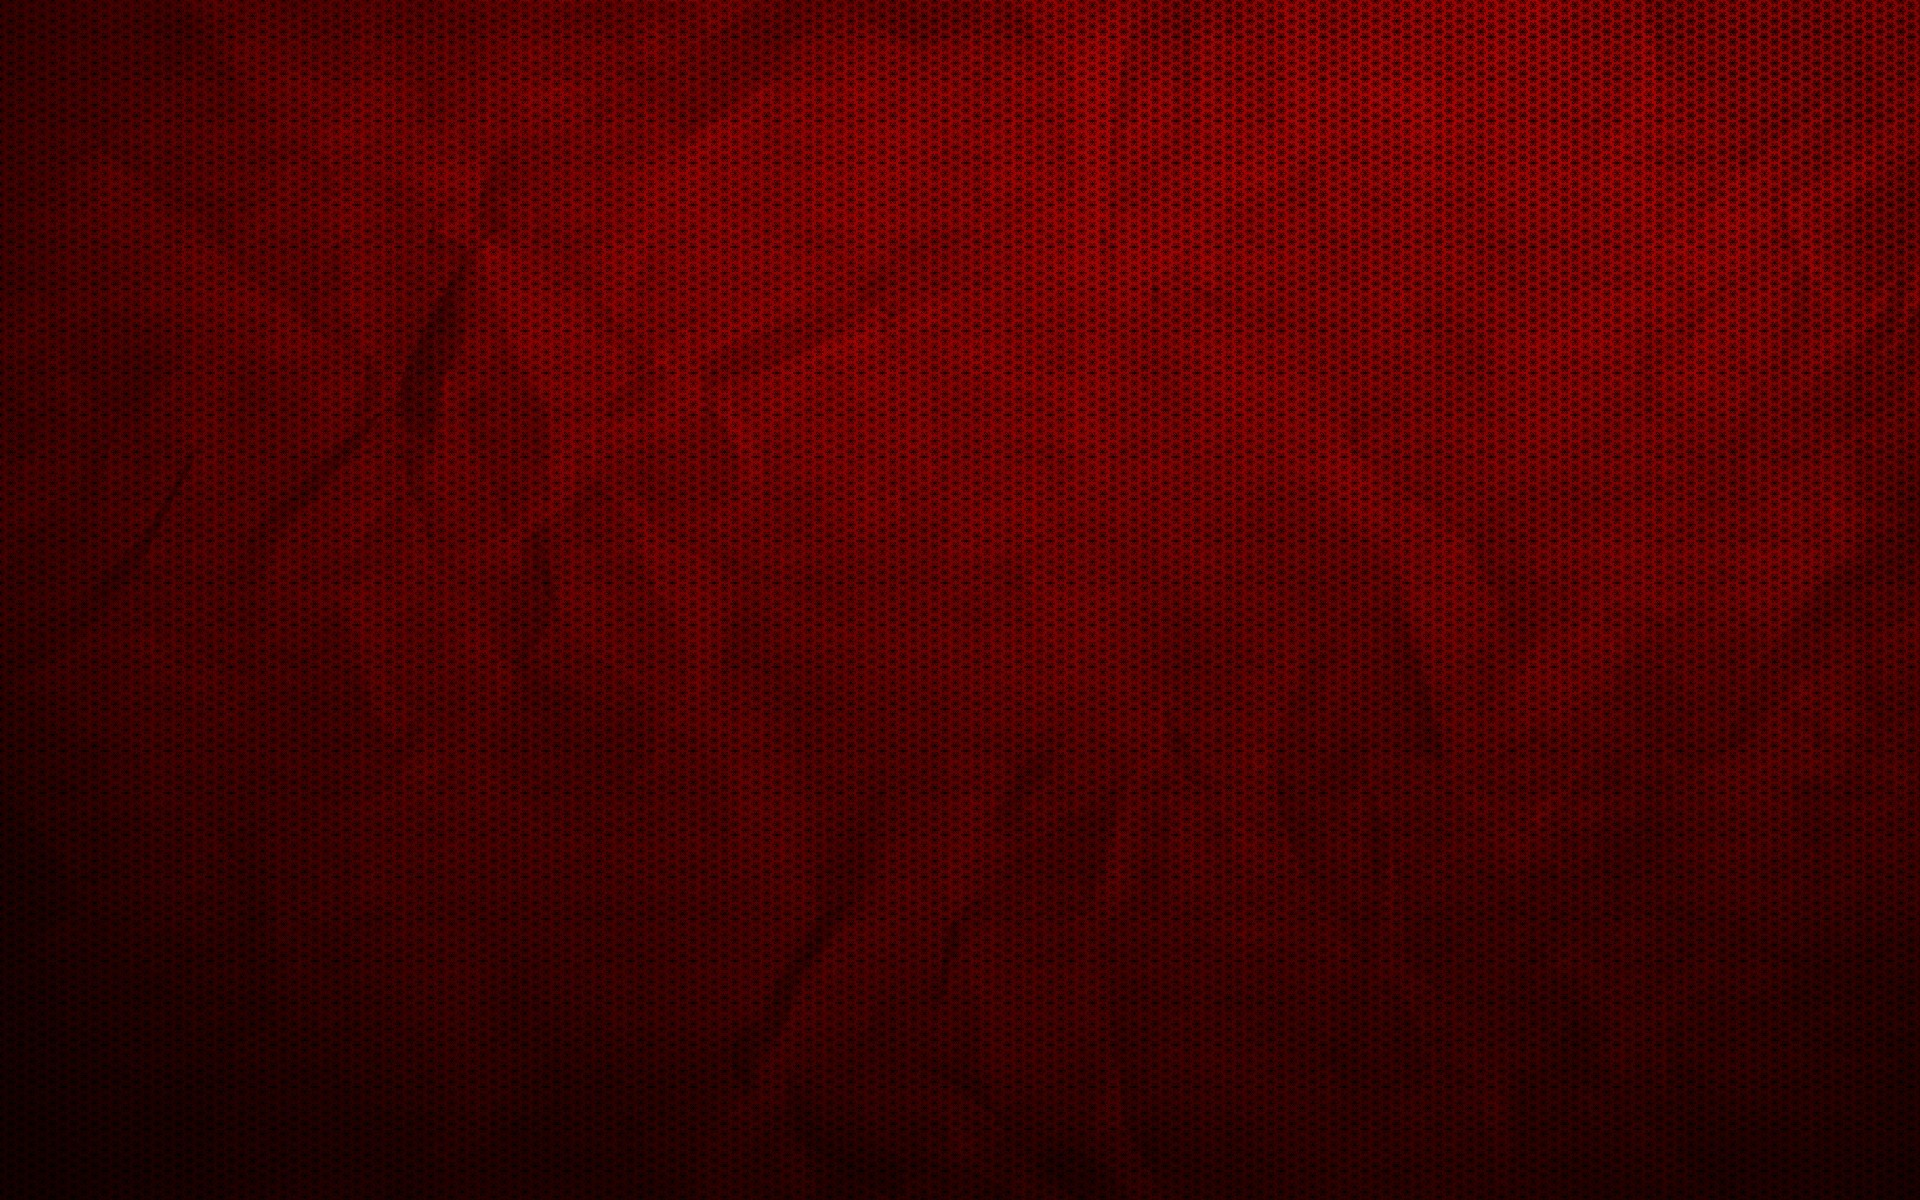 hd wallpaper red colour background hd wallpaper red colour background